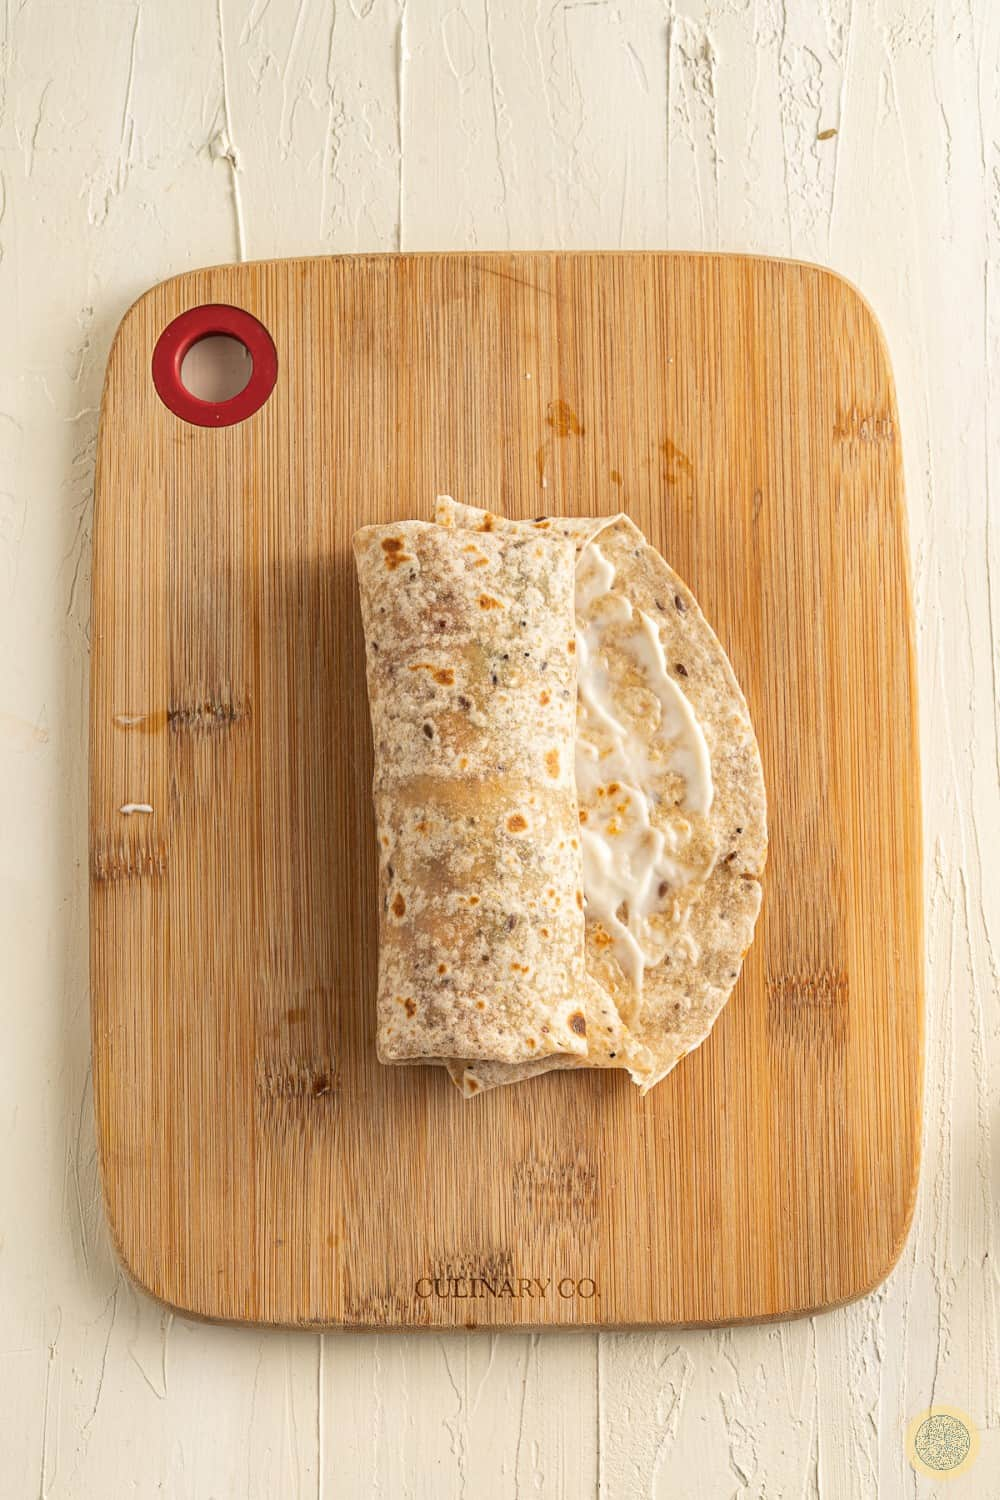 How to wrap the tortilla